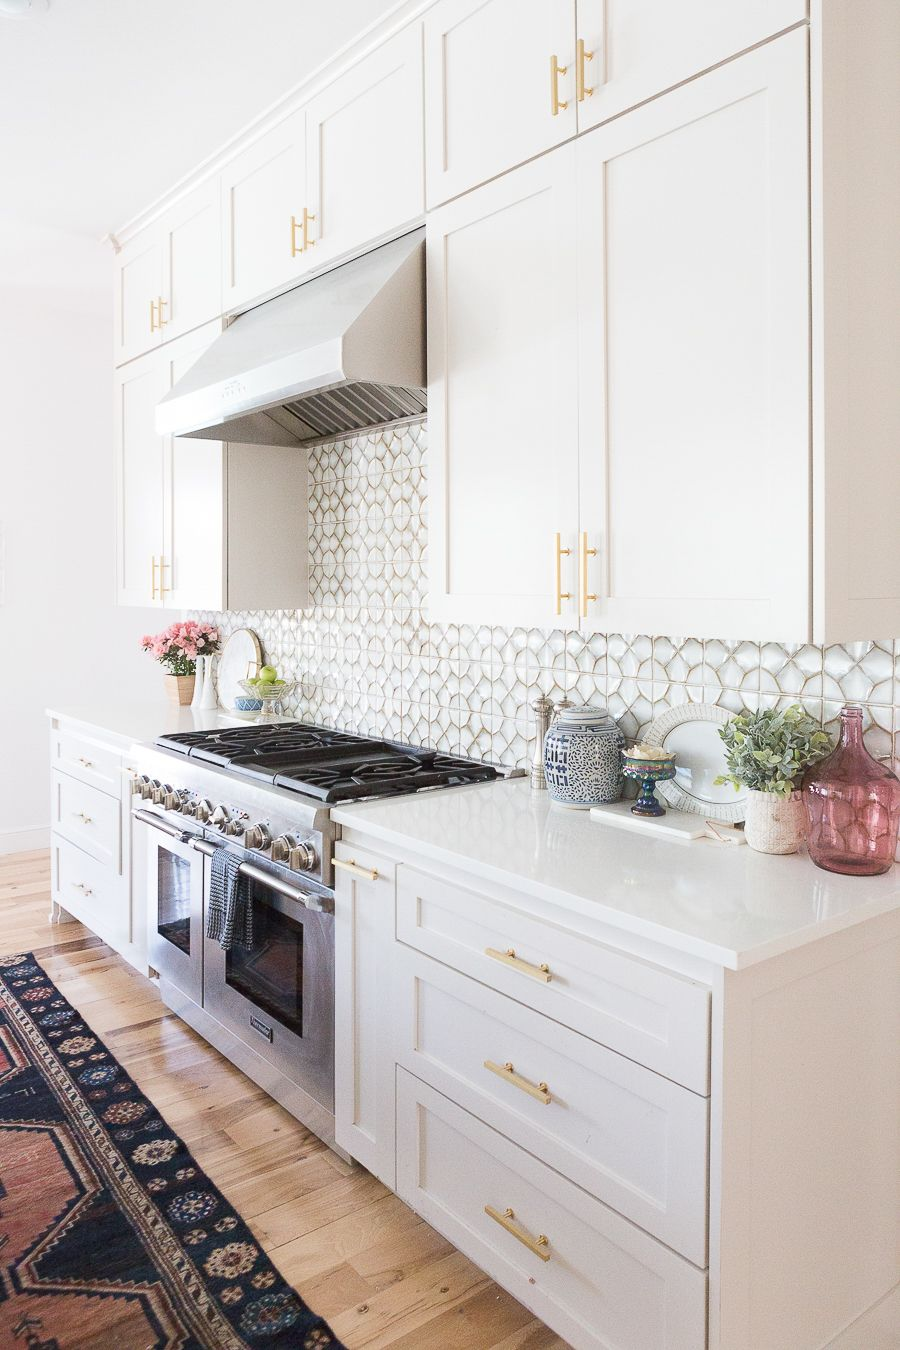 Affordable Ceramic Patterned Tile Backsplash And Flooring White